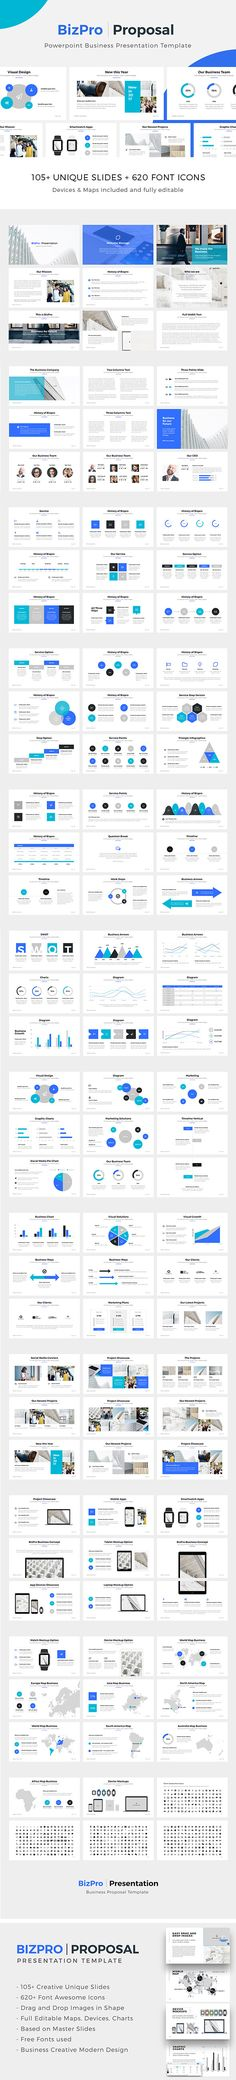 Commercial Proposal Format Cool Commercial Proposal Template #09  Commercial Proposal  Pinterest .